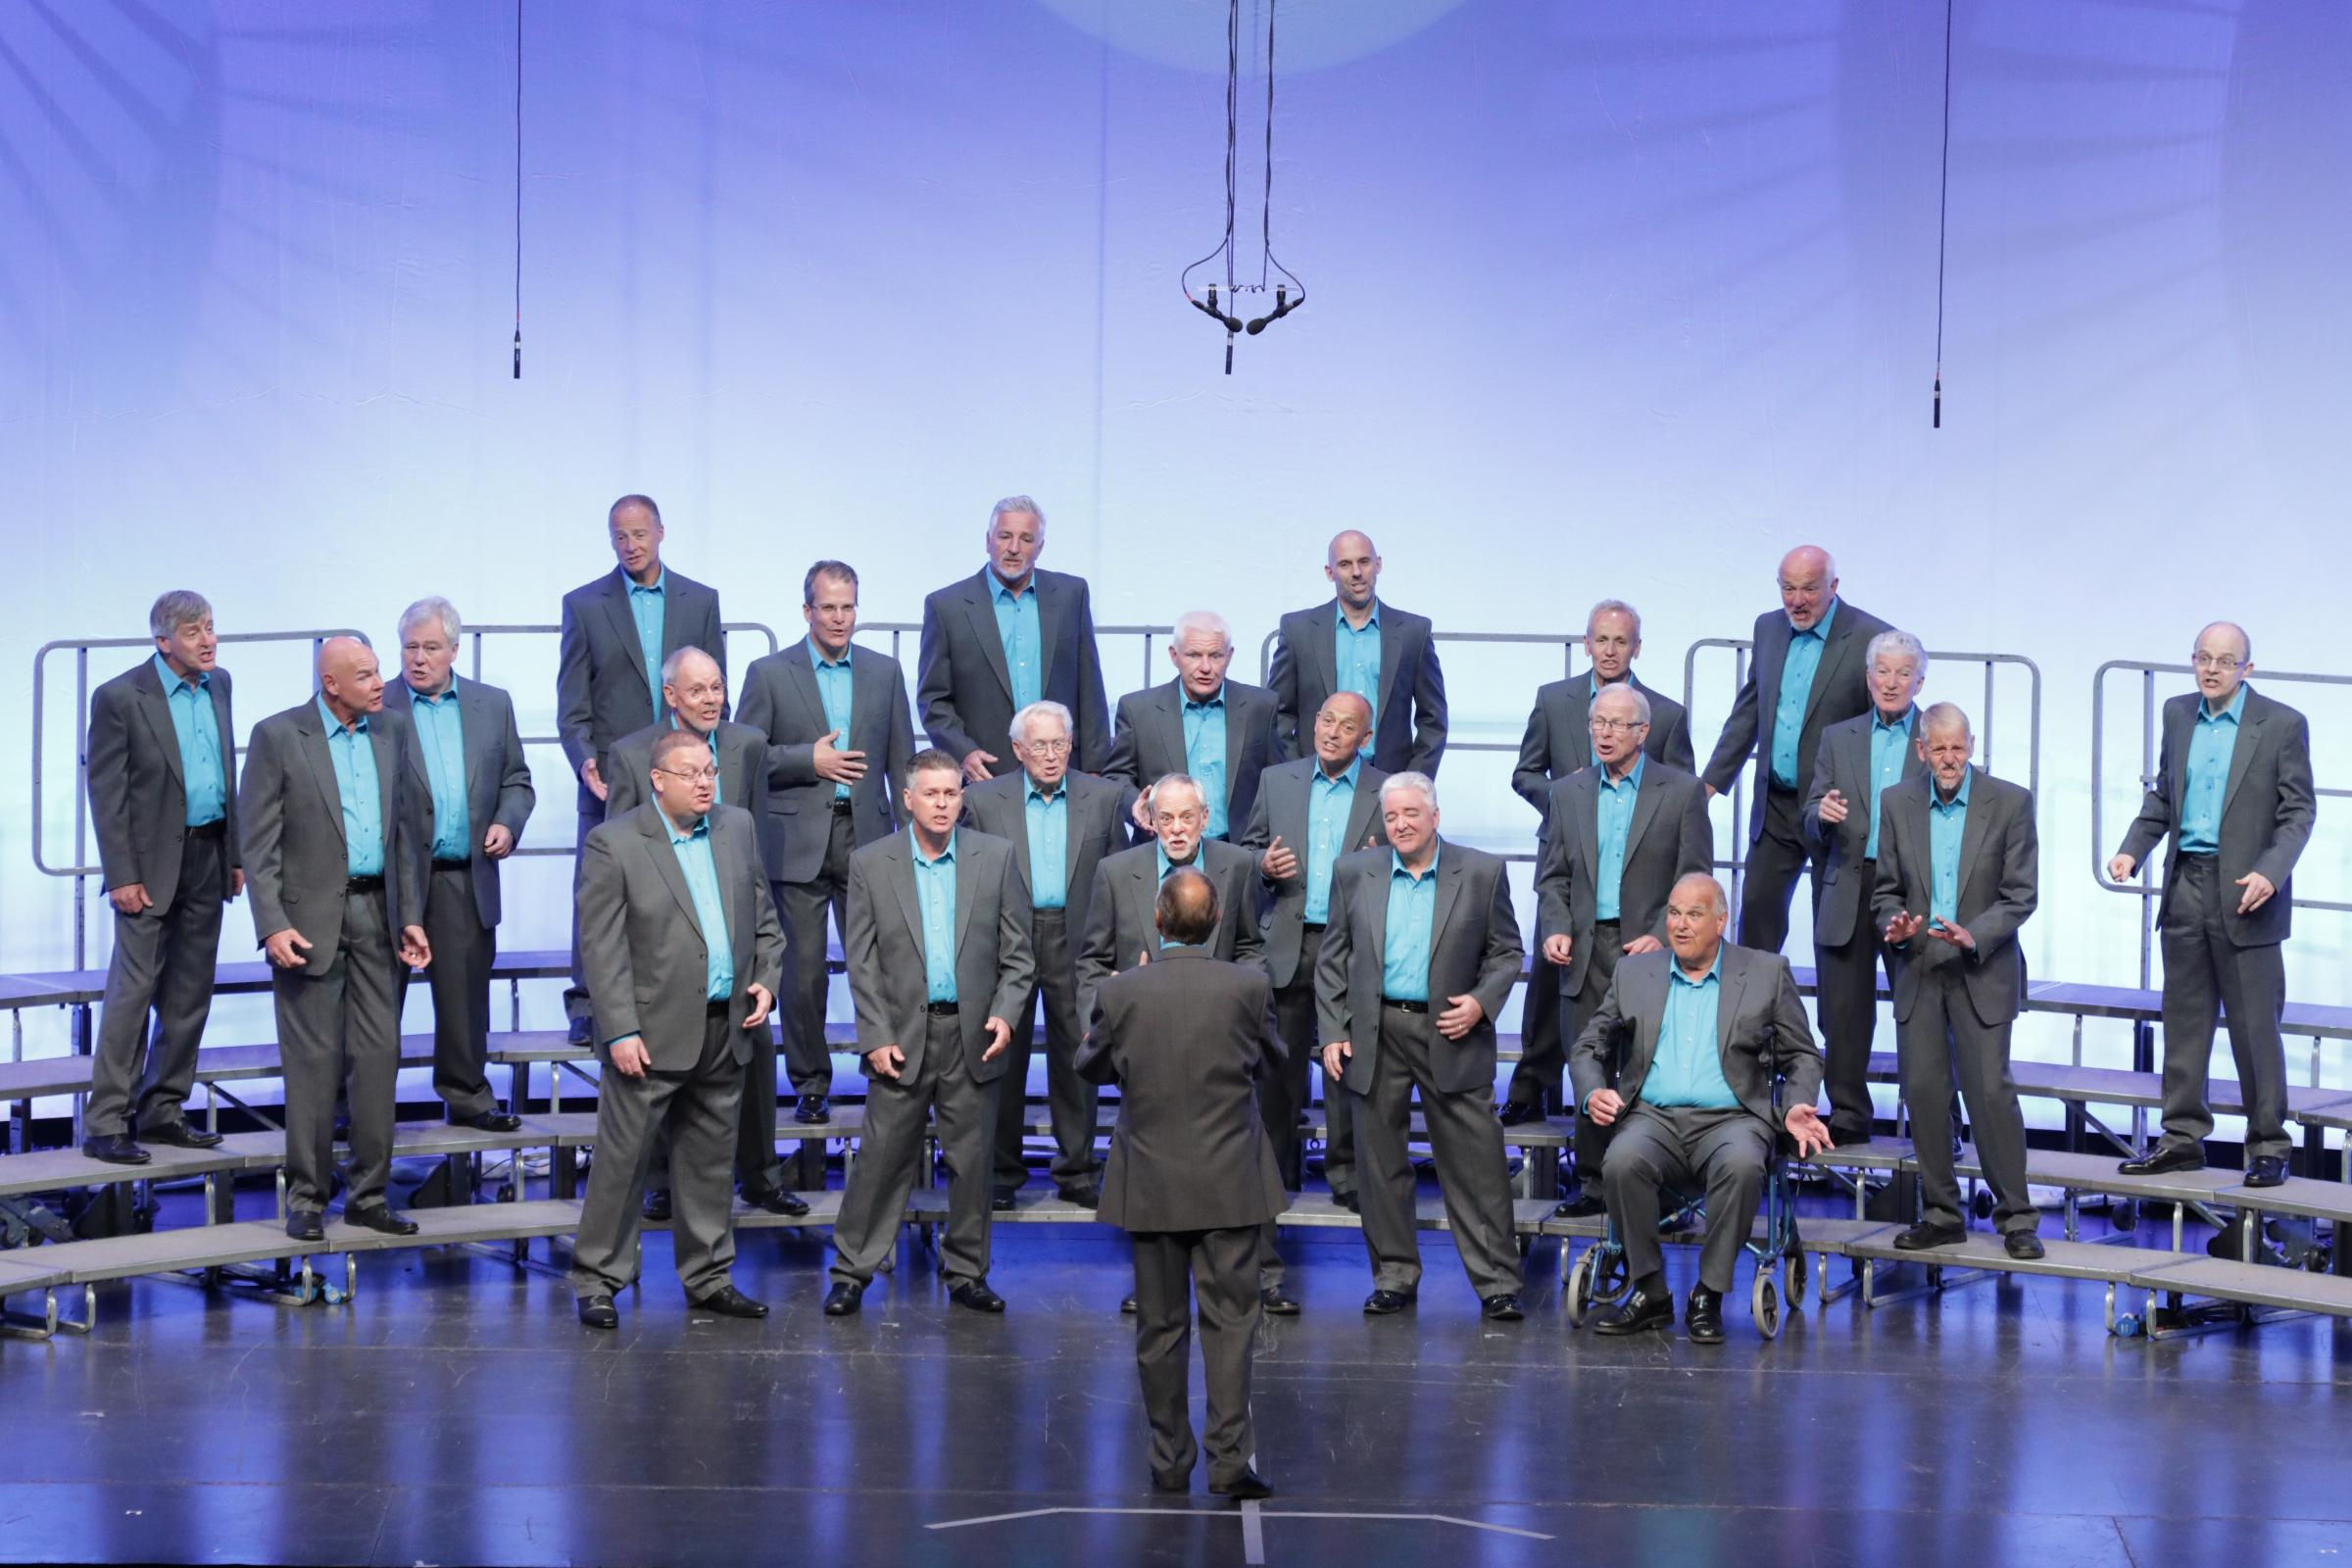 A Cappella Showcase IV will see several choirs perform, including Wight Harmony.